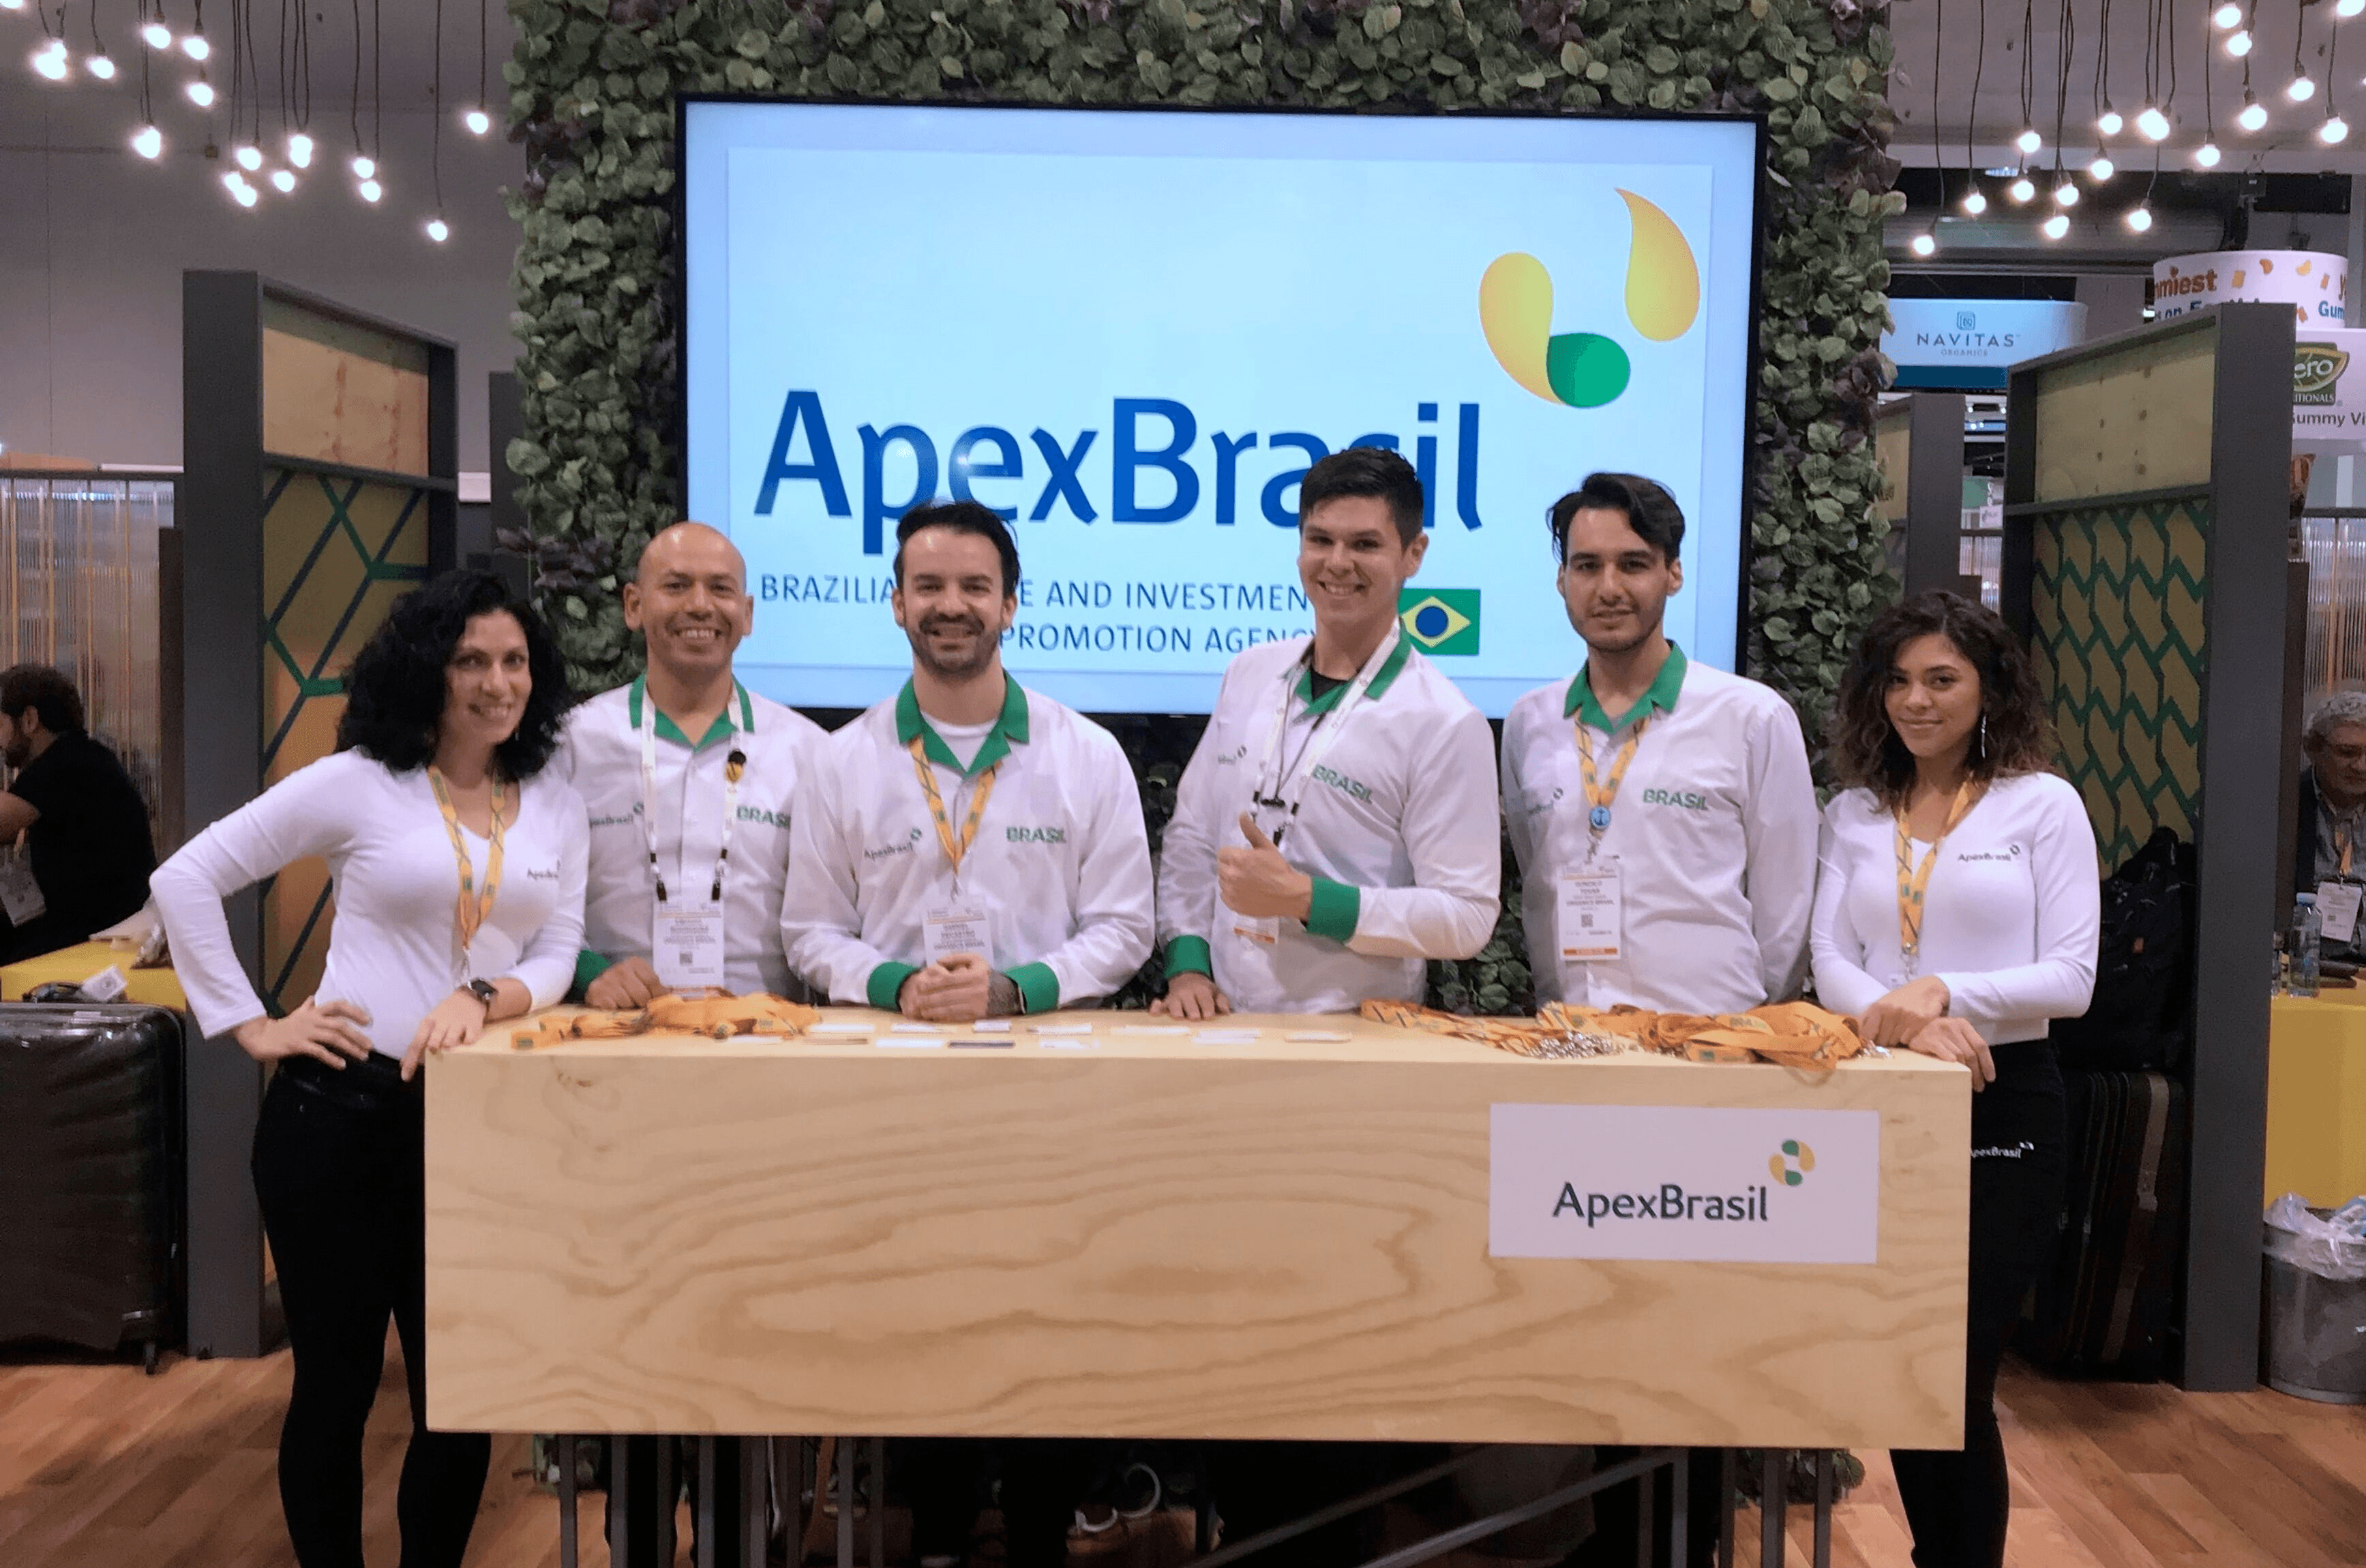 Apex Brazil at The Natural Products Expo in Los Angeles, CA